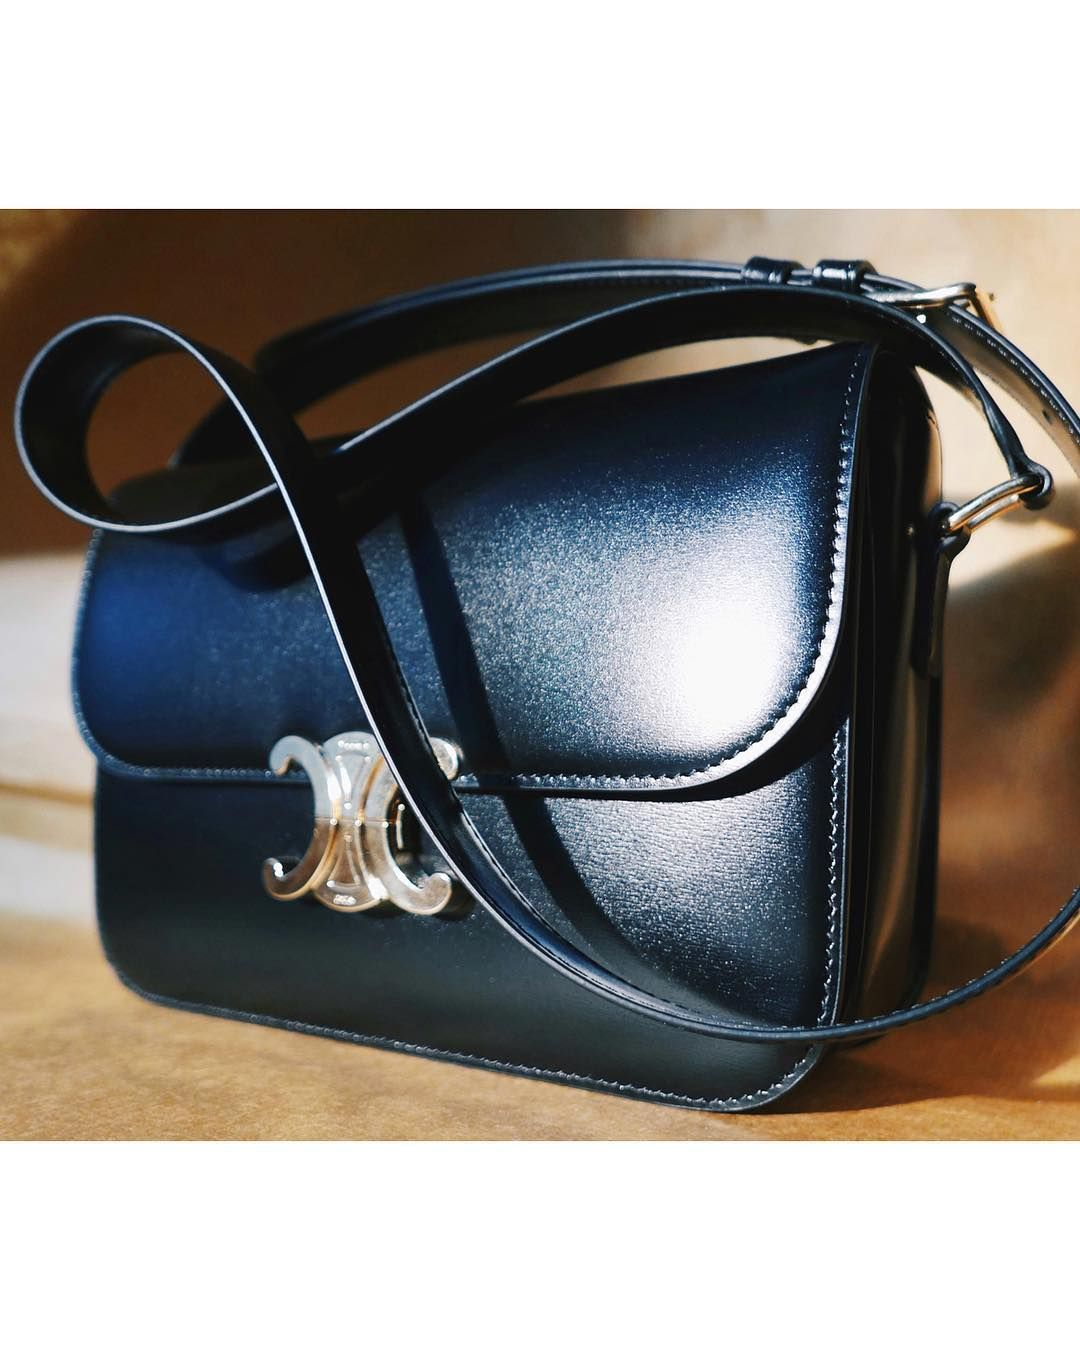 513e7ddc5e Hand on heart my favourite bag from  celine s upcoming S S19 that will be  available next week. Leather is soft yet slick